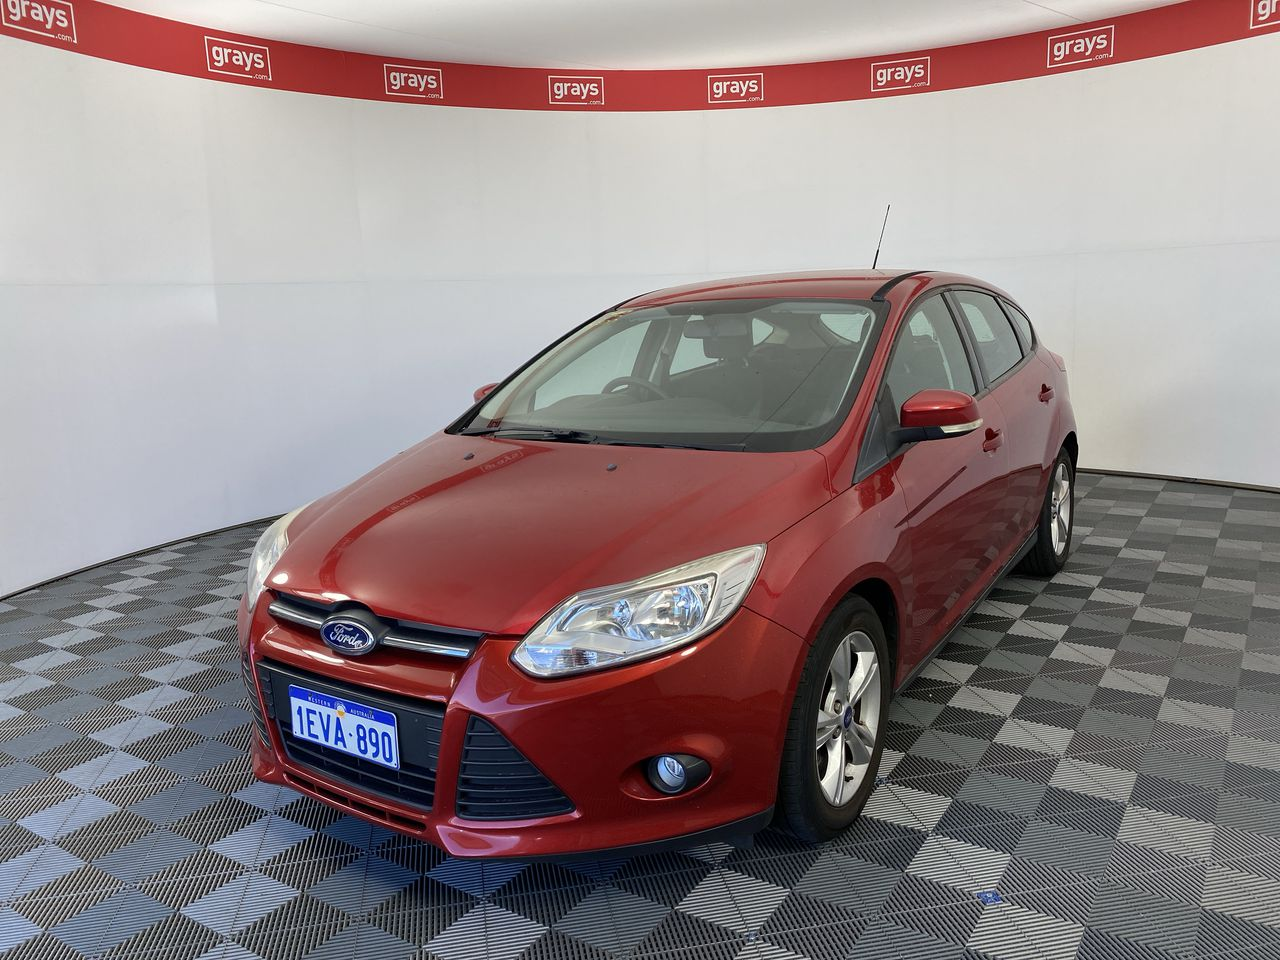 2012 Ford Focus Trend LW Automatic Hatchback